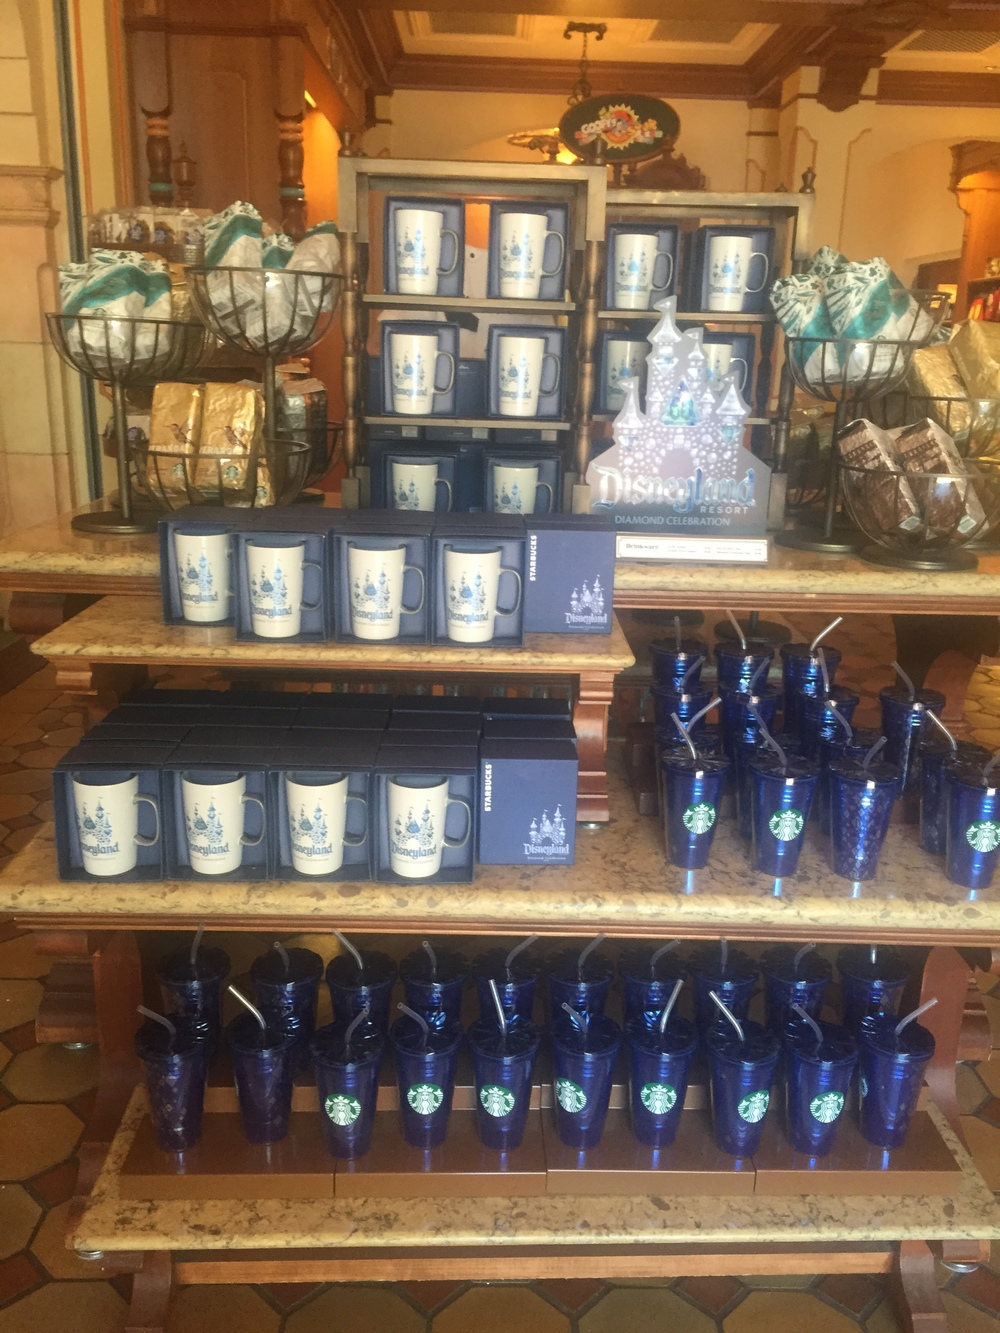 Skip the Starbucks line and check out the merch display inside Trolley Treats.